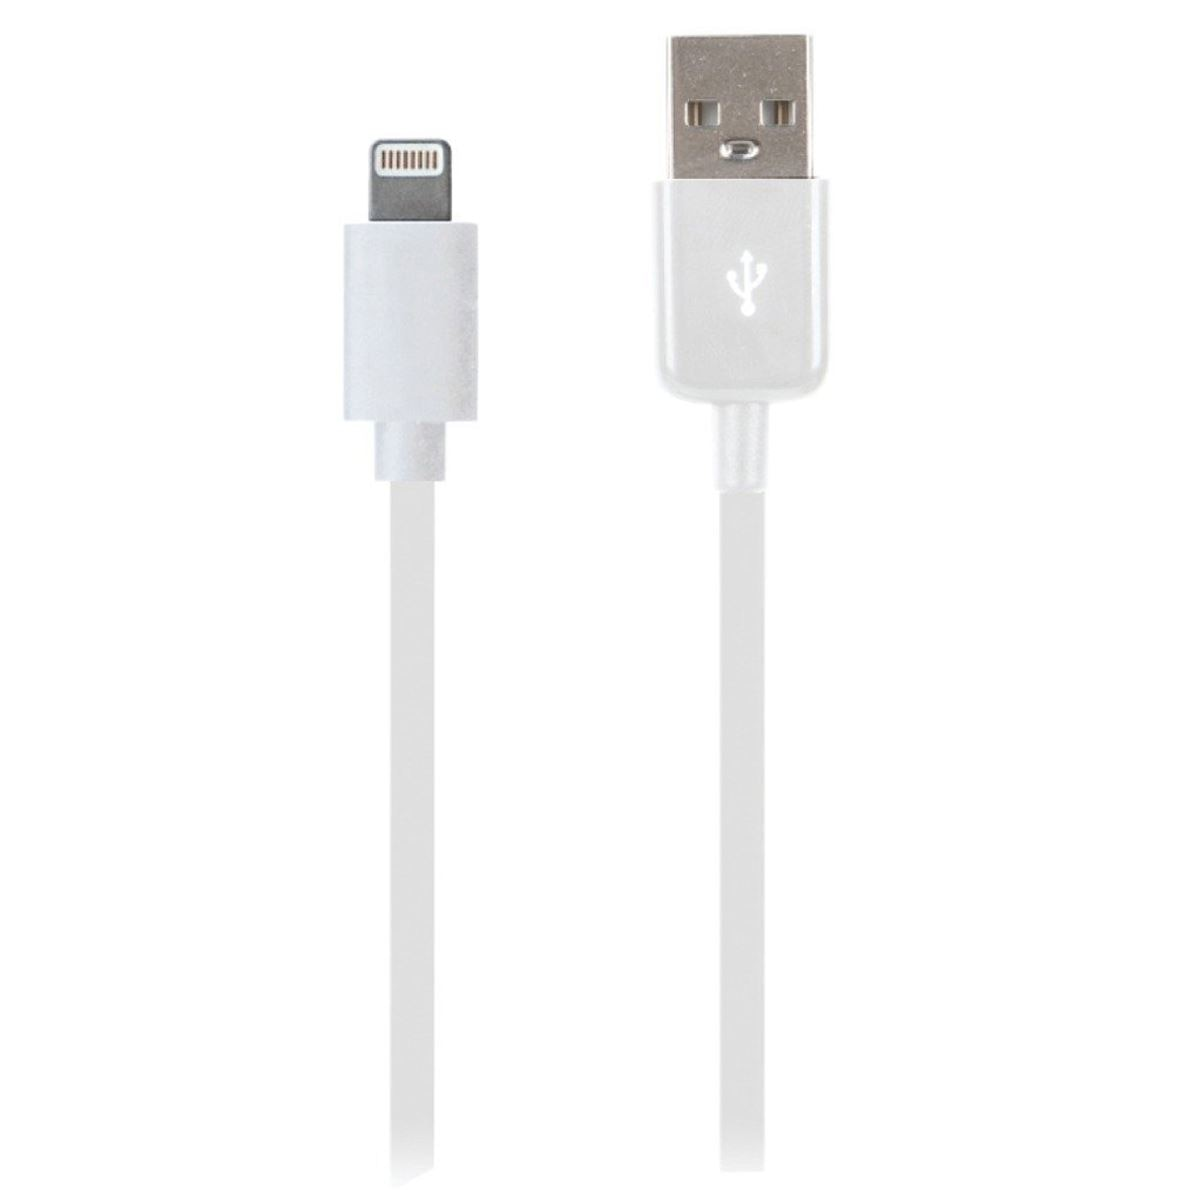 Cable iessentials lightning  - Sanborns